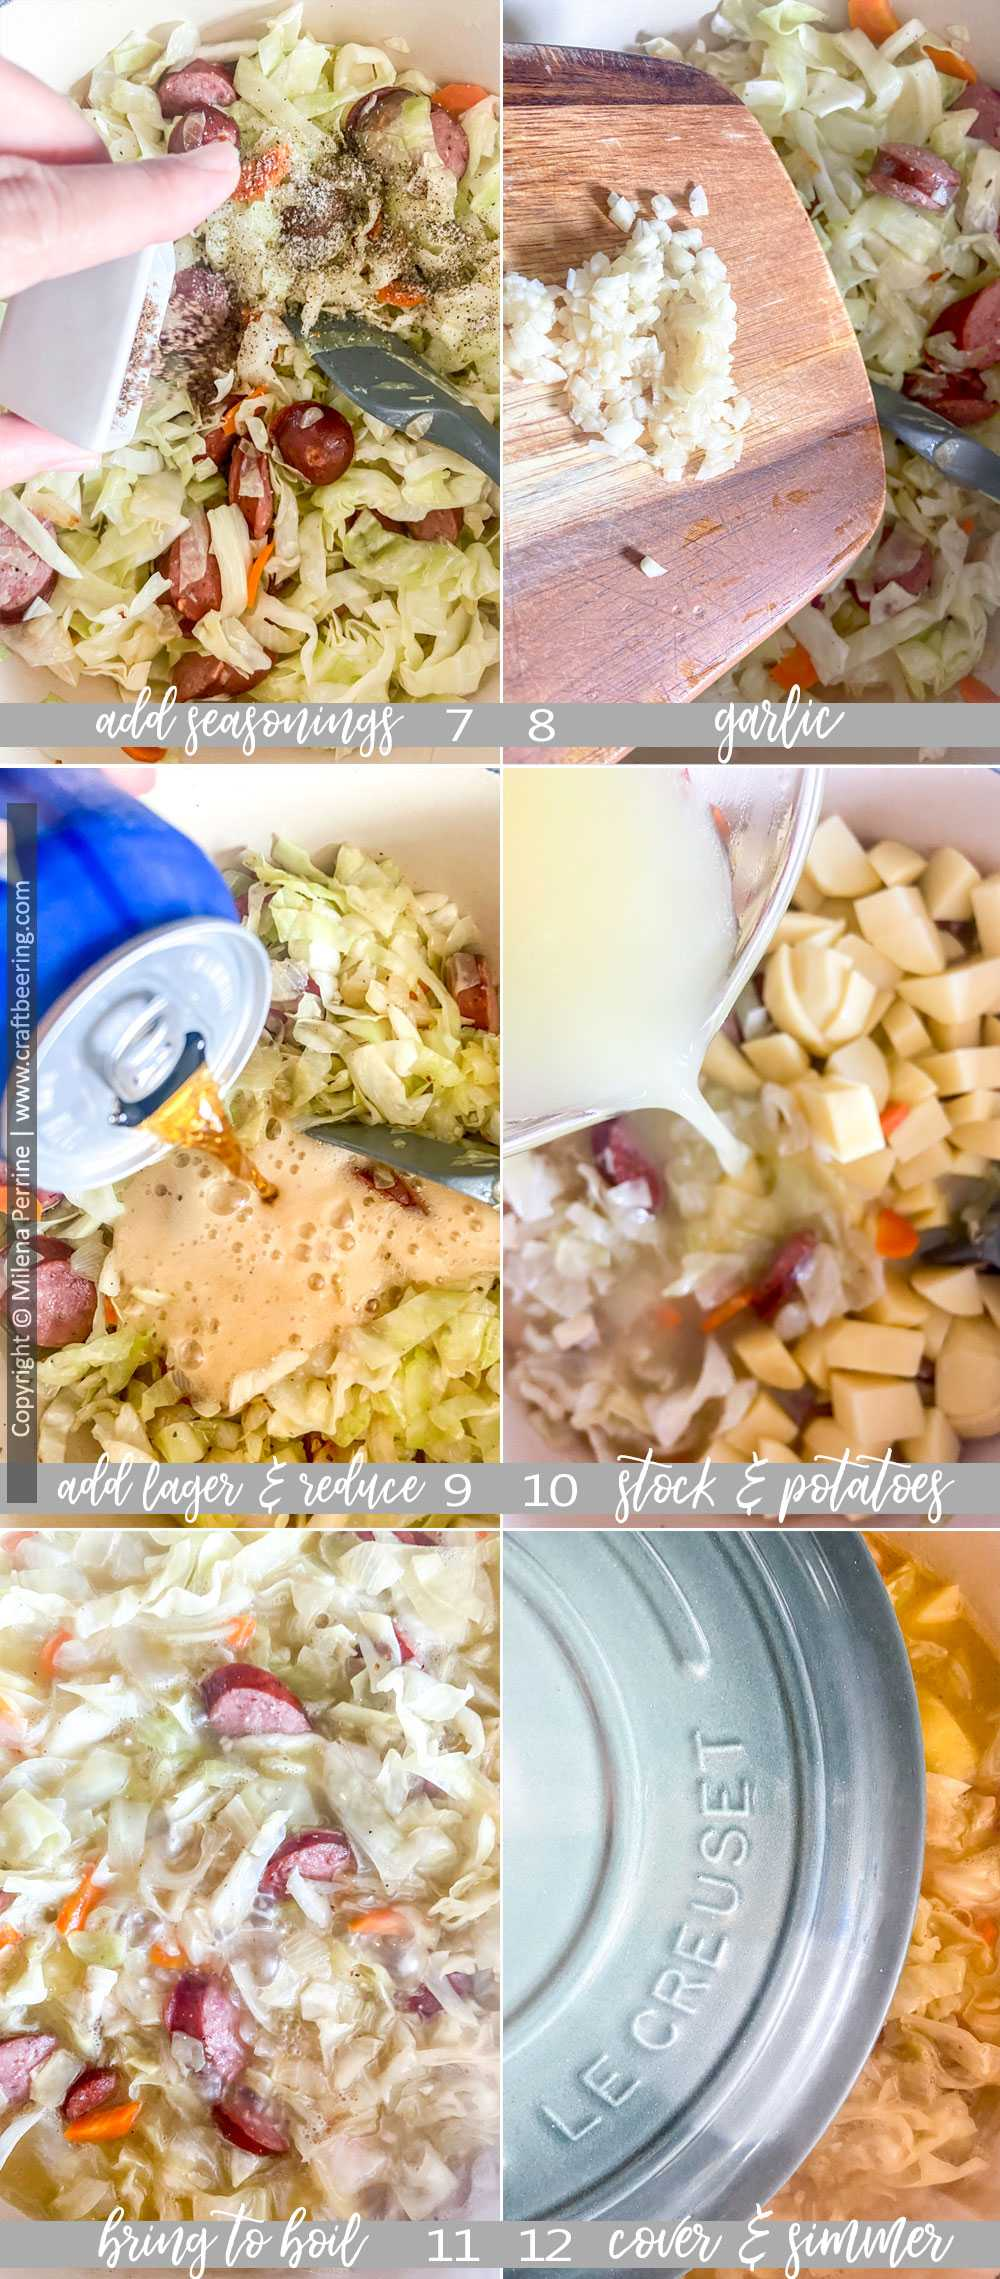 Step by step cabbage stew recipe - part 2